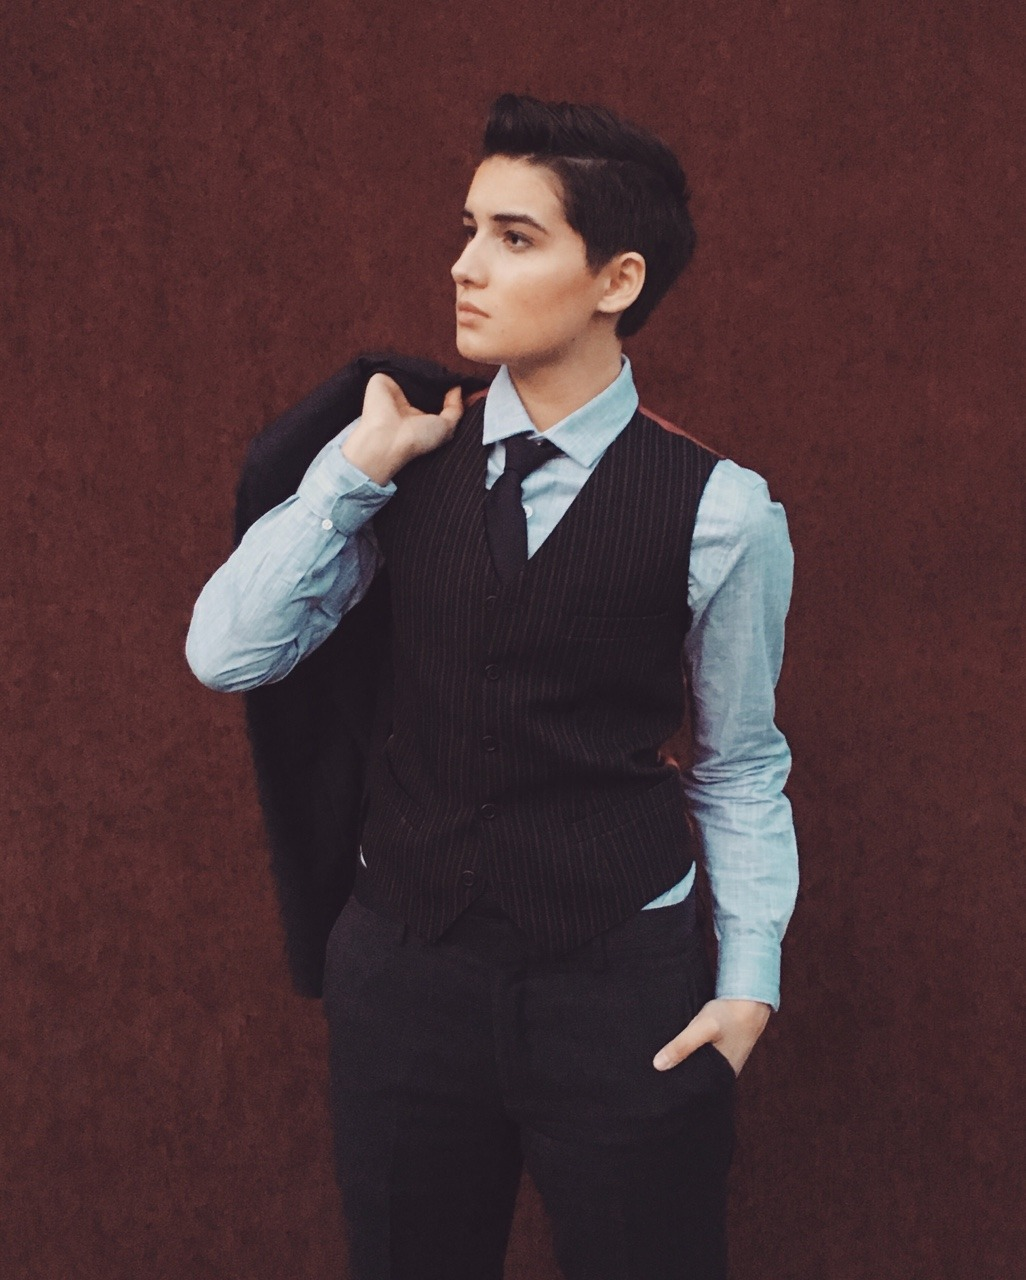 queer business casual photo - 1